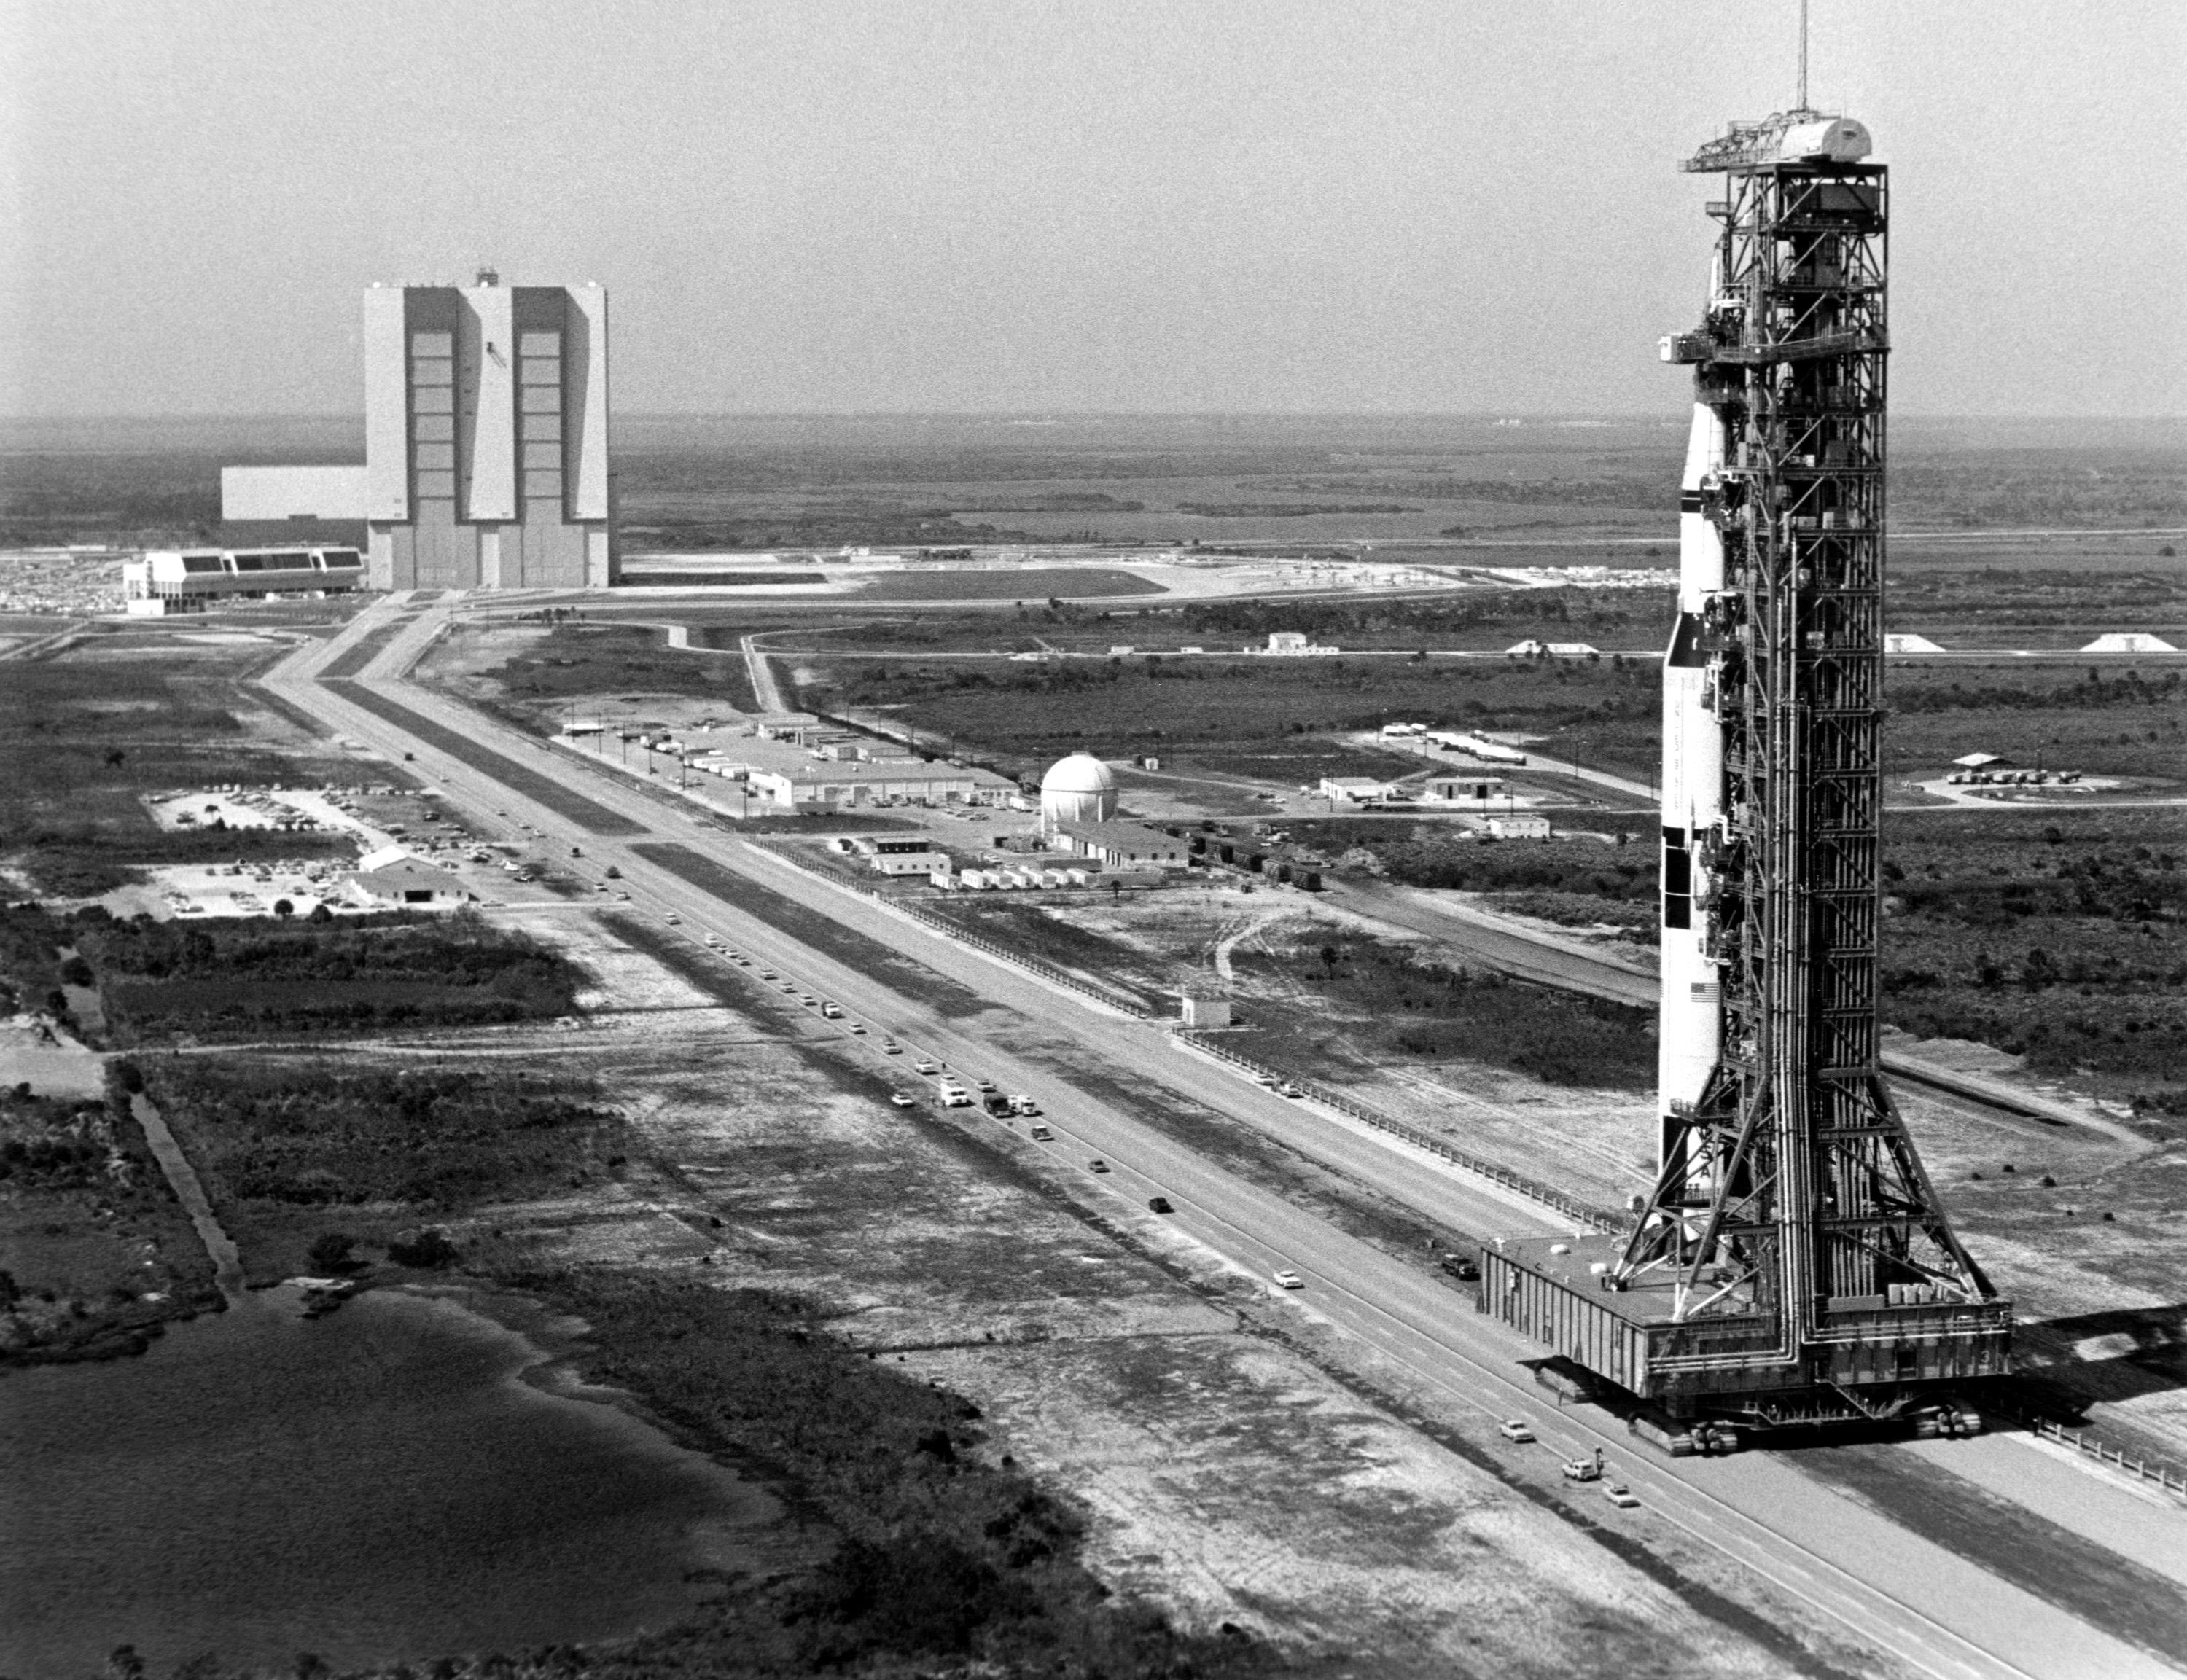 The 363-foot-high Saturn V rocket for the Apollo 10 mission towers over the crawlerway during its rollout from the Vehicle Assembly Building to Launch Pad 39B, four miles away. Apollo 10 marked the first use of Pad B. Astronauts Thomas P. Stafford and Eugene A. Cernan descended in a lunar module spacecraft to 50,000 feet above the moon's surface while John W. Young orbited above in the command module. Image credit: NASA March 11, 1969